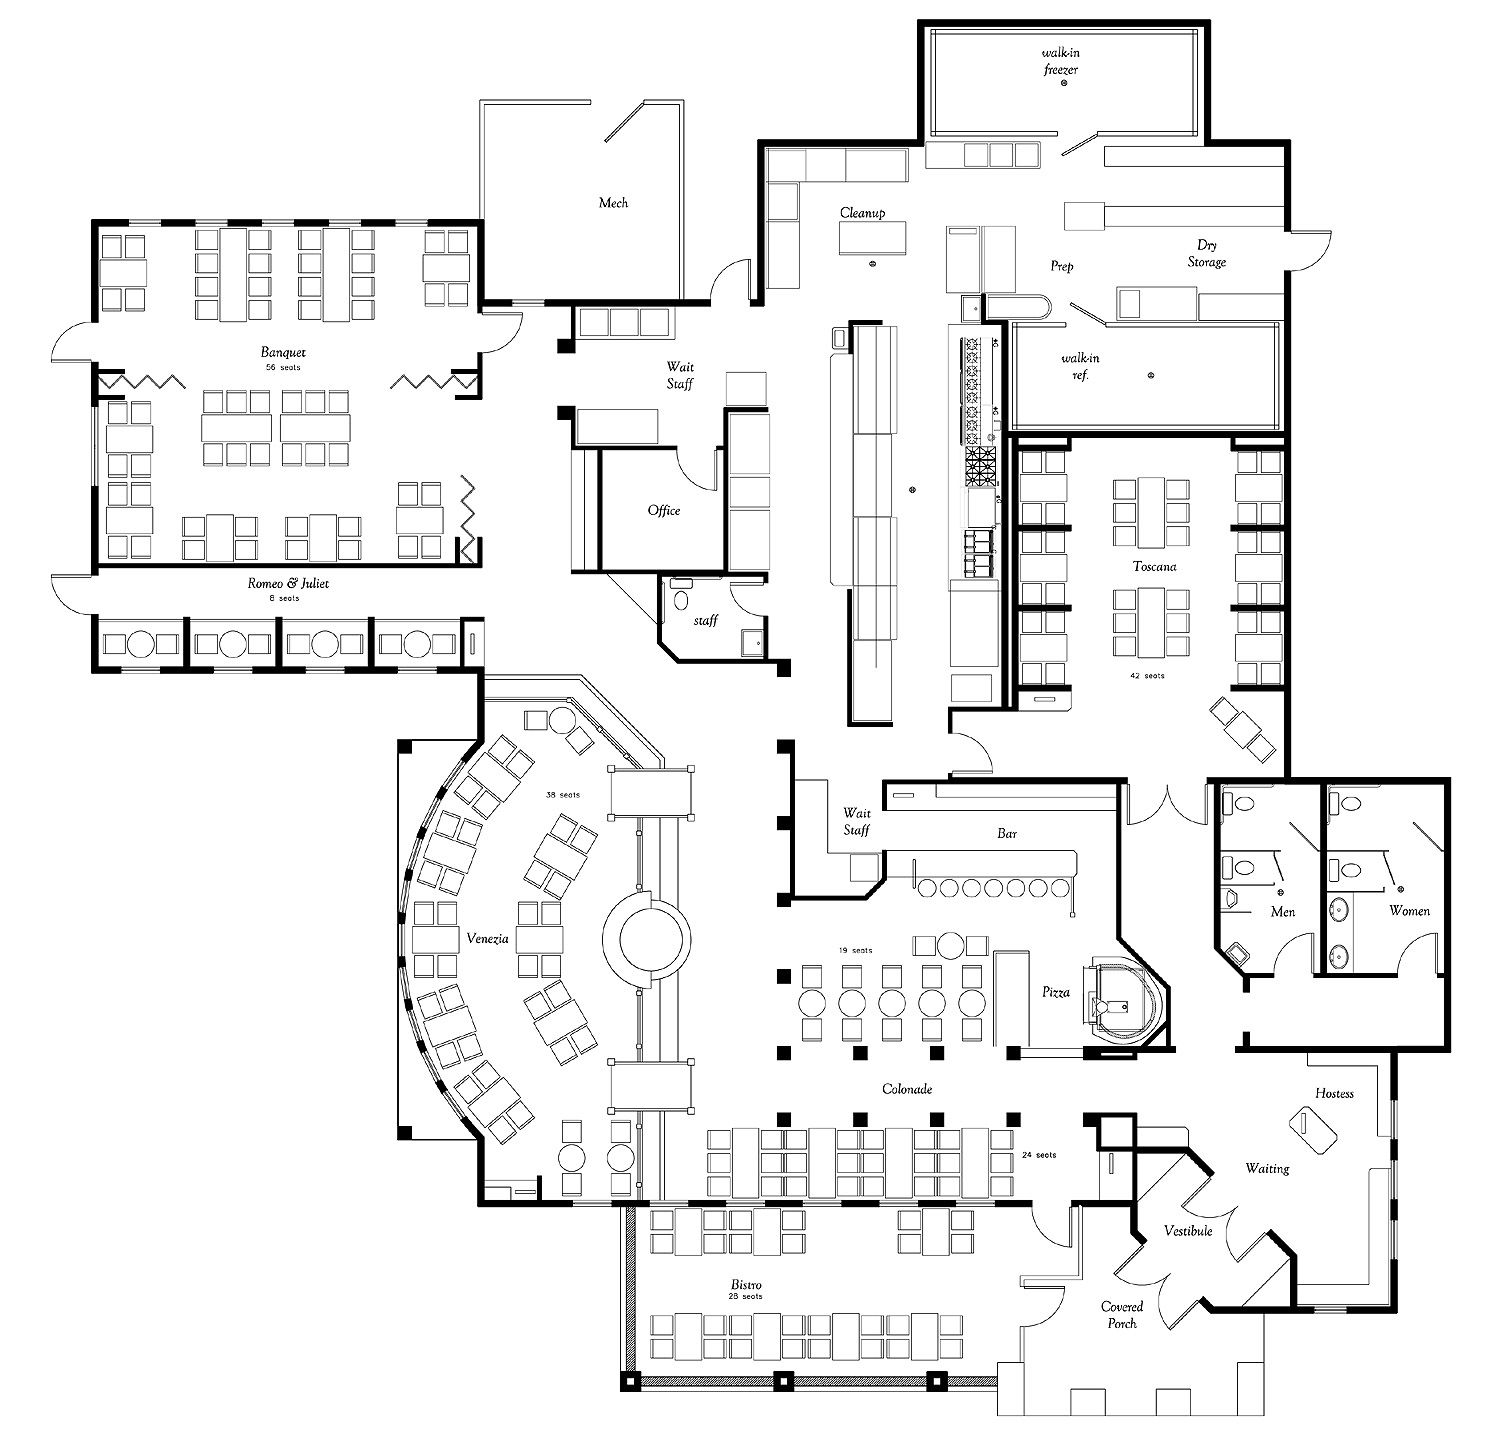 Design A Restaurant Floor Plan